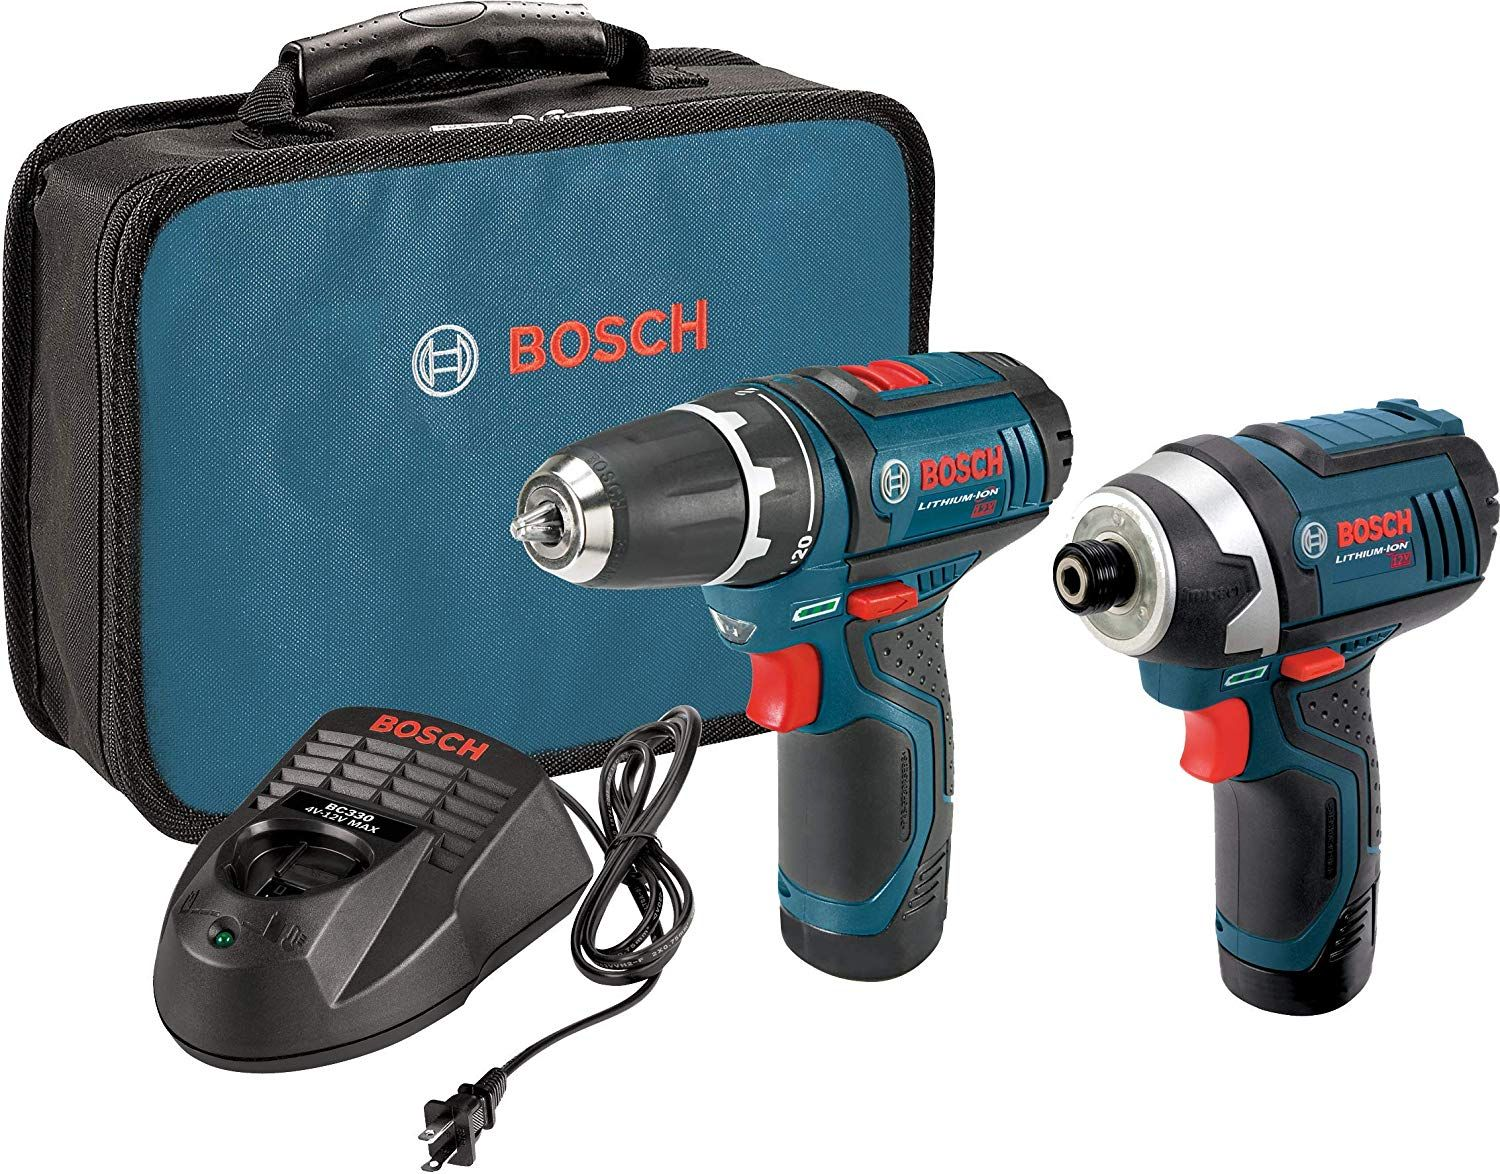 Bosch Power Tools Combo Kit Clpk22 120 12 Volt Cordless Tool Set Drill Driver And Impact Driver With 2 Batteries Charger And Case In 2020 Combo Kit Impact Driver Bosch